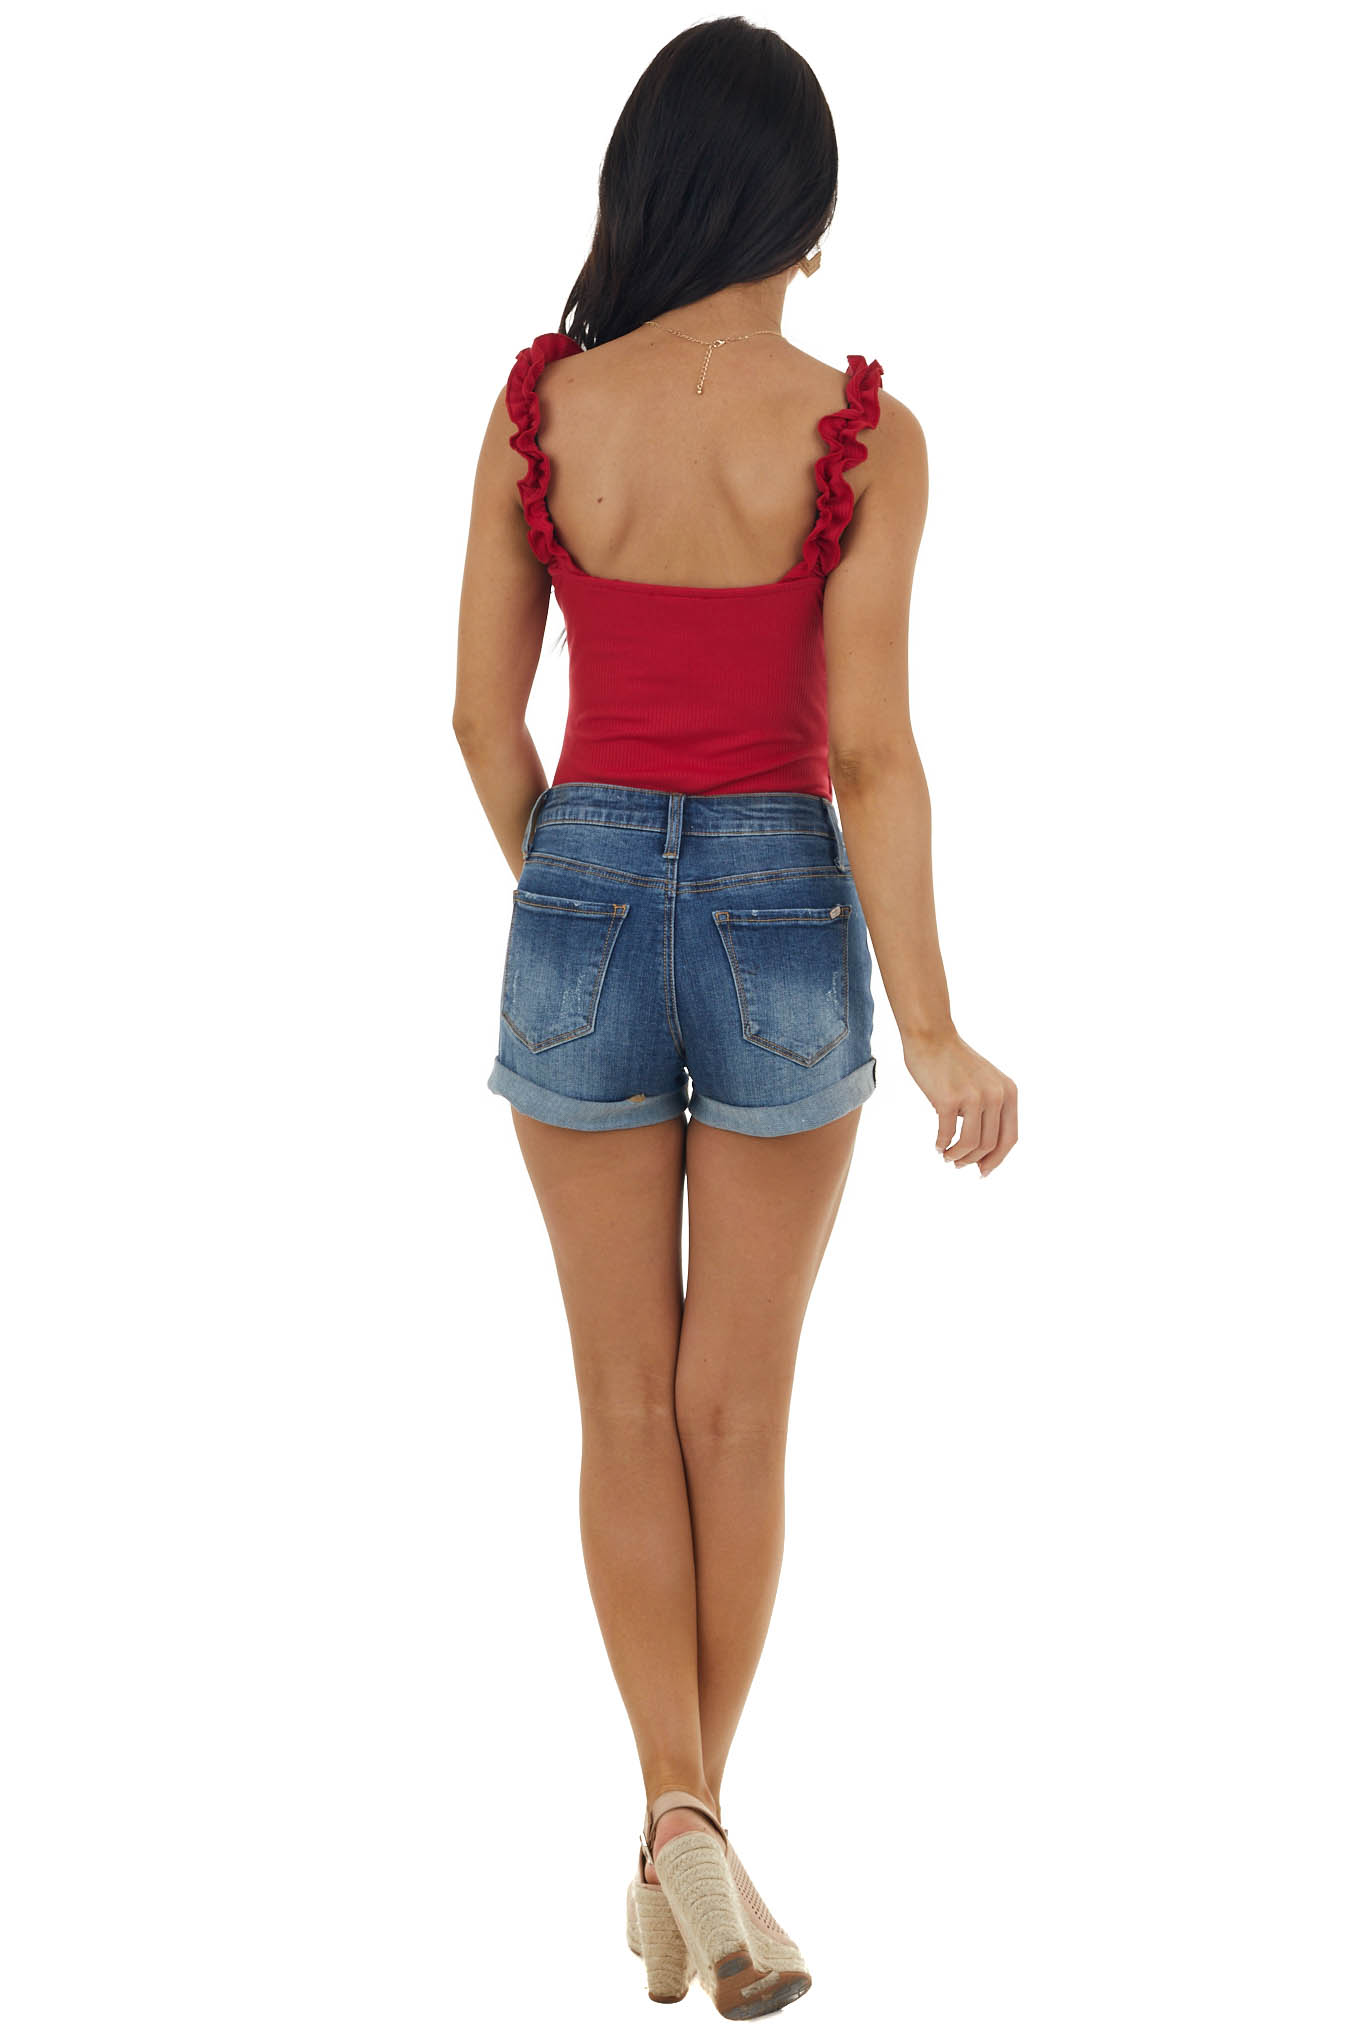 Lipstick Red Bodysuit with Frill Detail